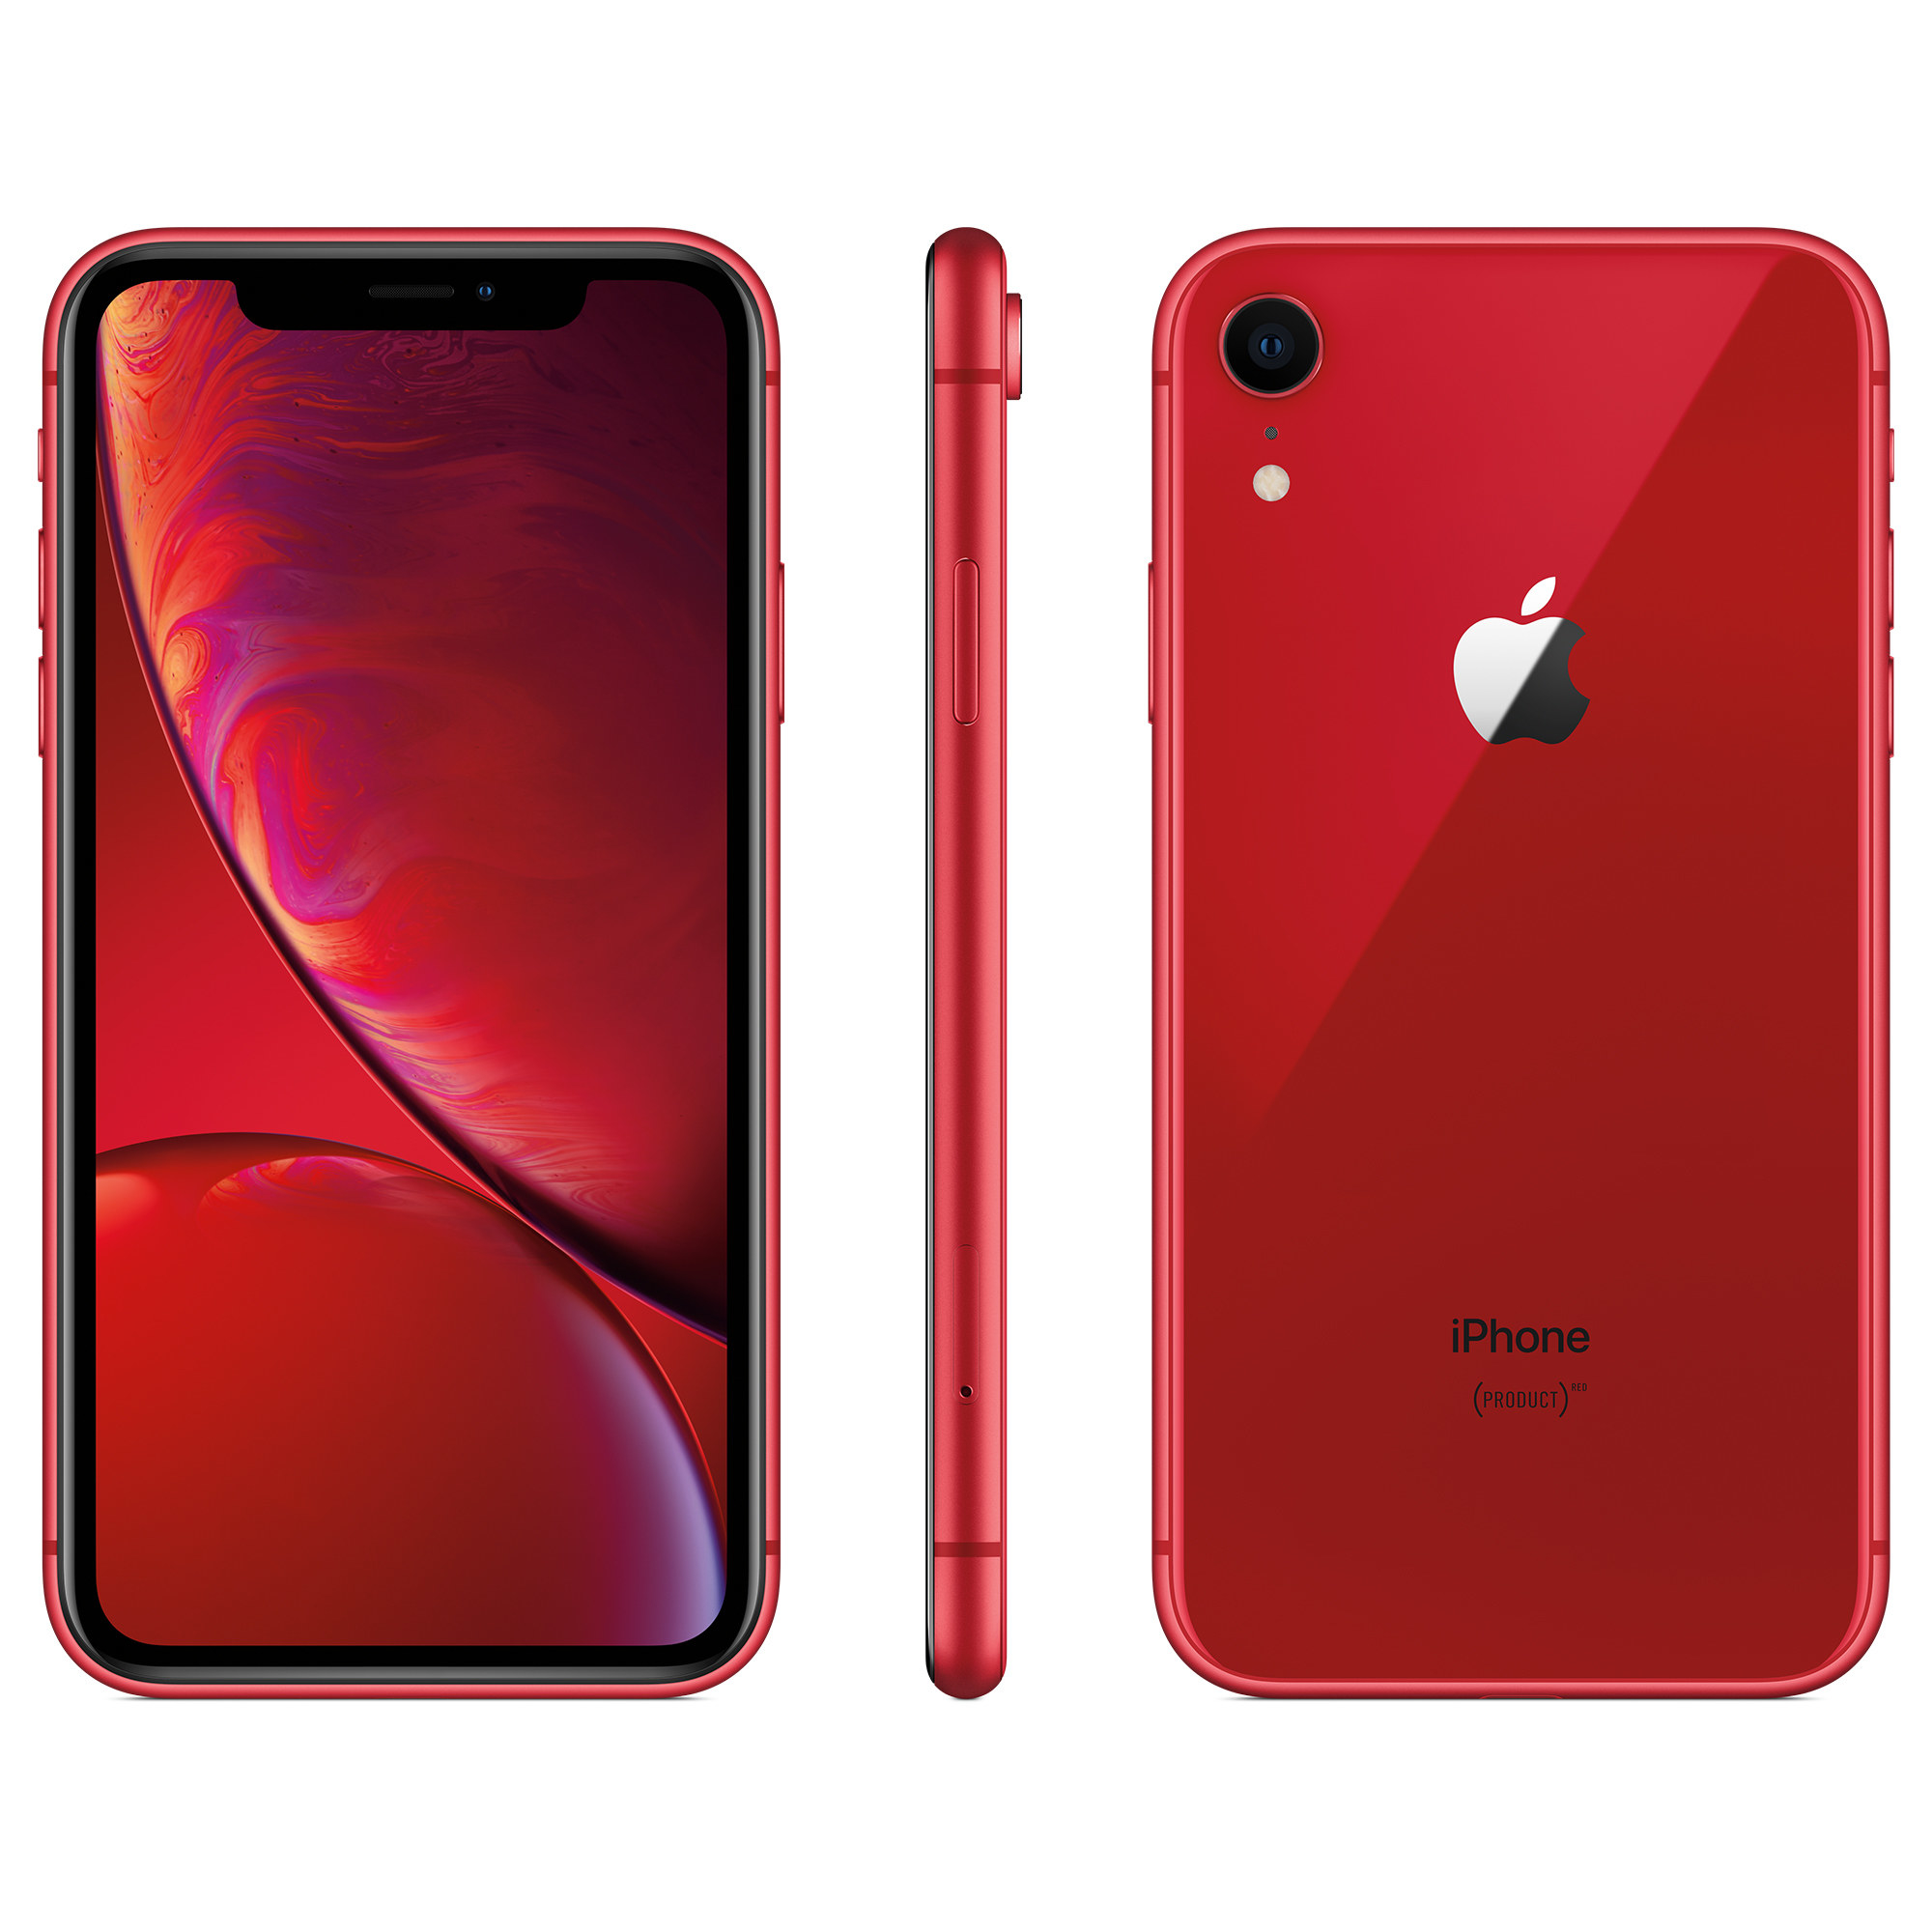 The red iPhone